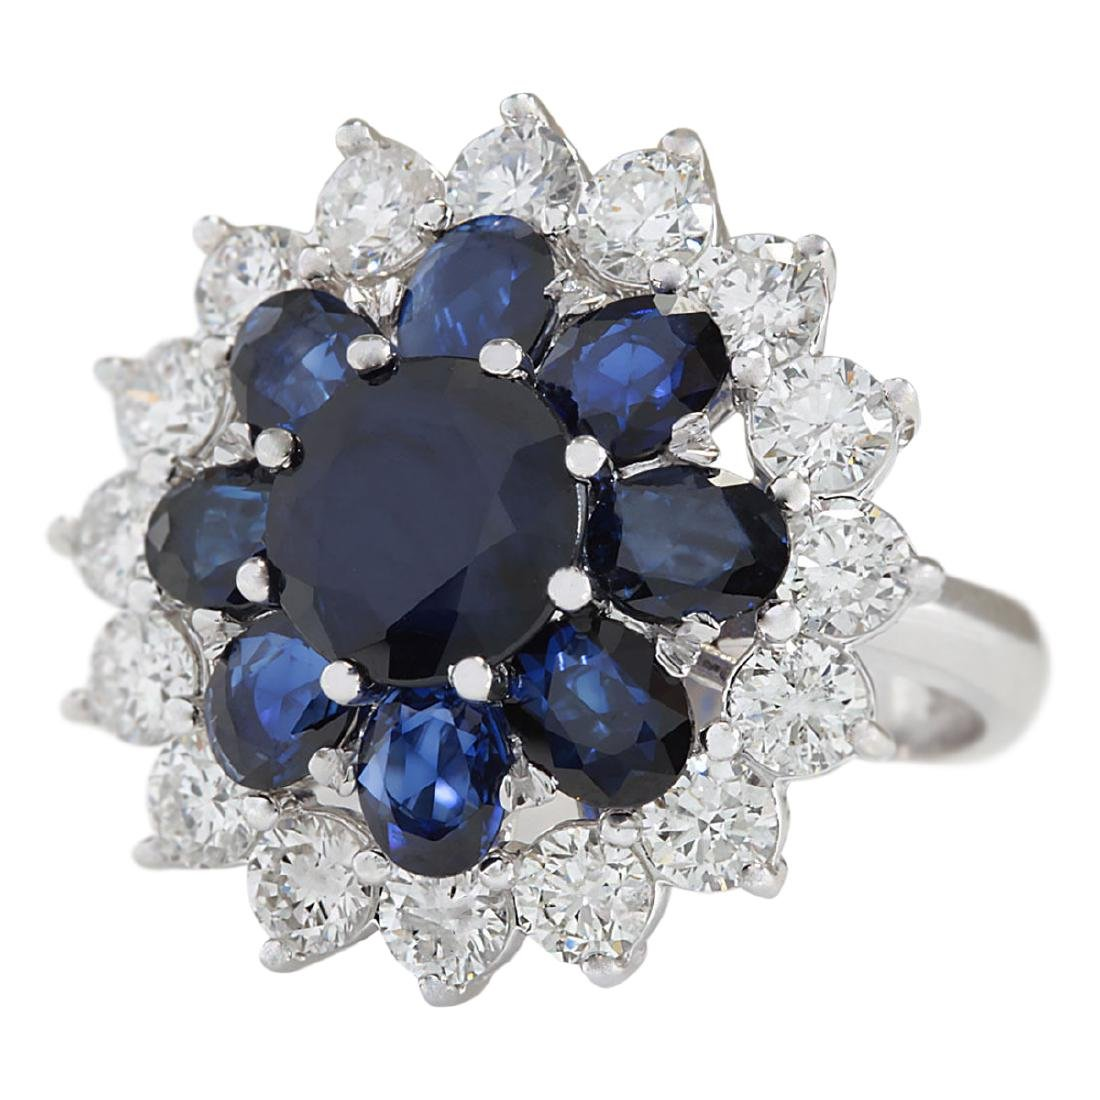 6.37 CTW Natural Sapphire And Diamond Ring In 18K White - 2